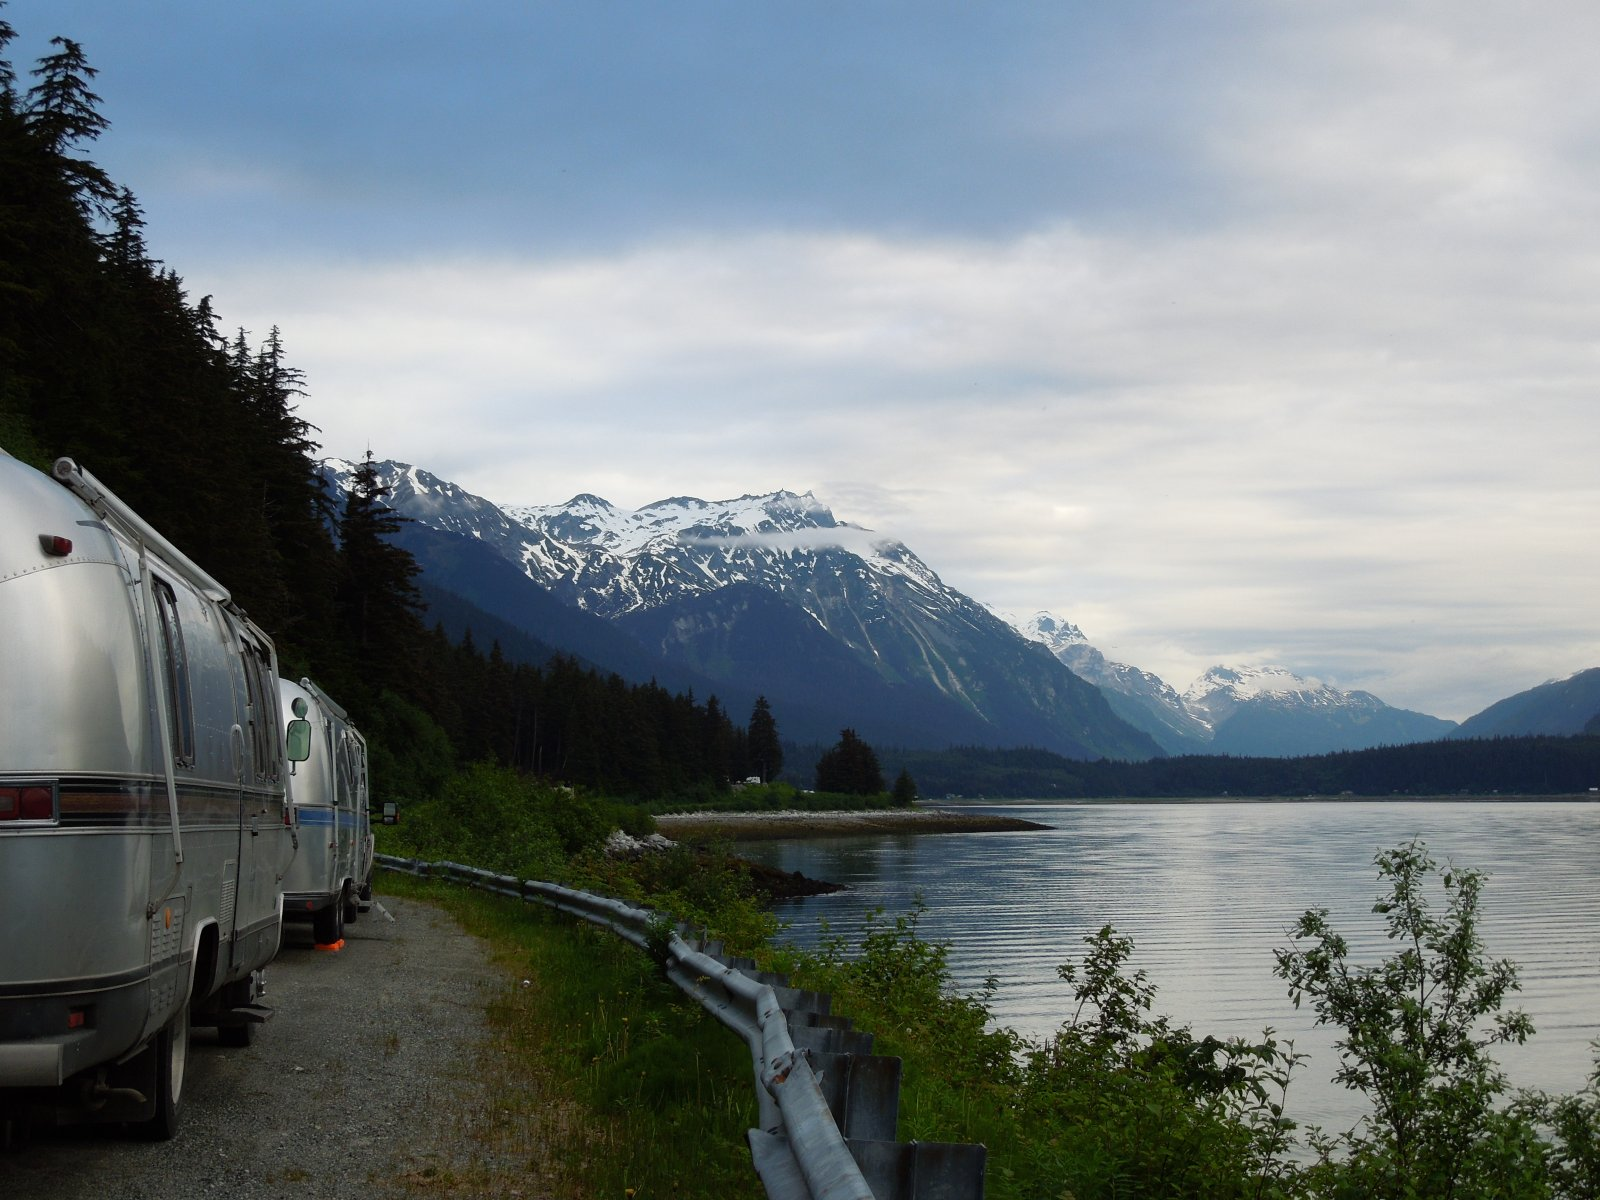 Click image for larger version  Name:Whithorse to Haines, AK 241.jpg Views:70 Size:285.3 KB ID:214346